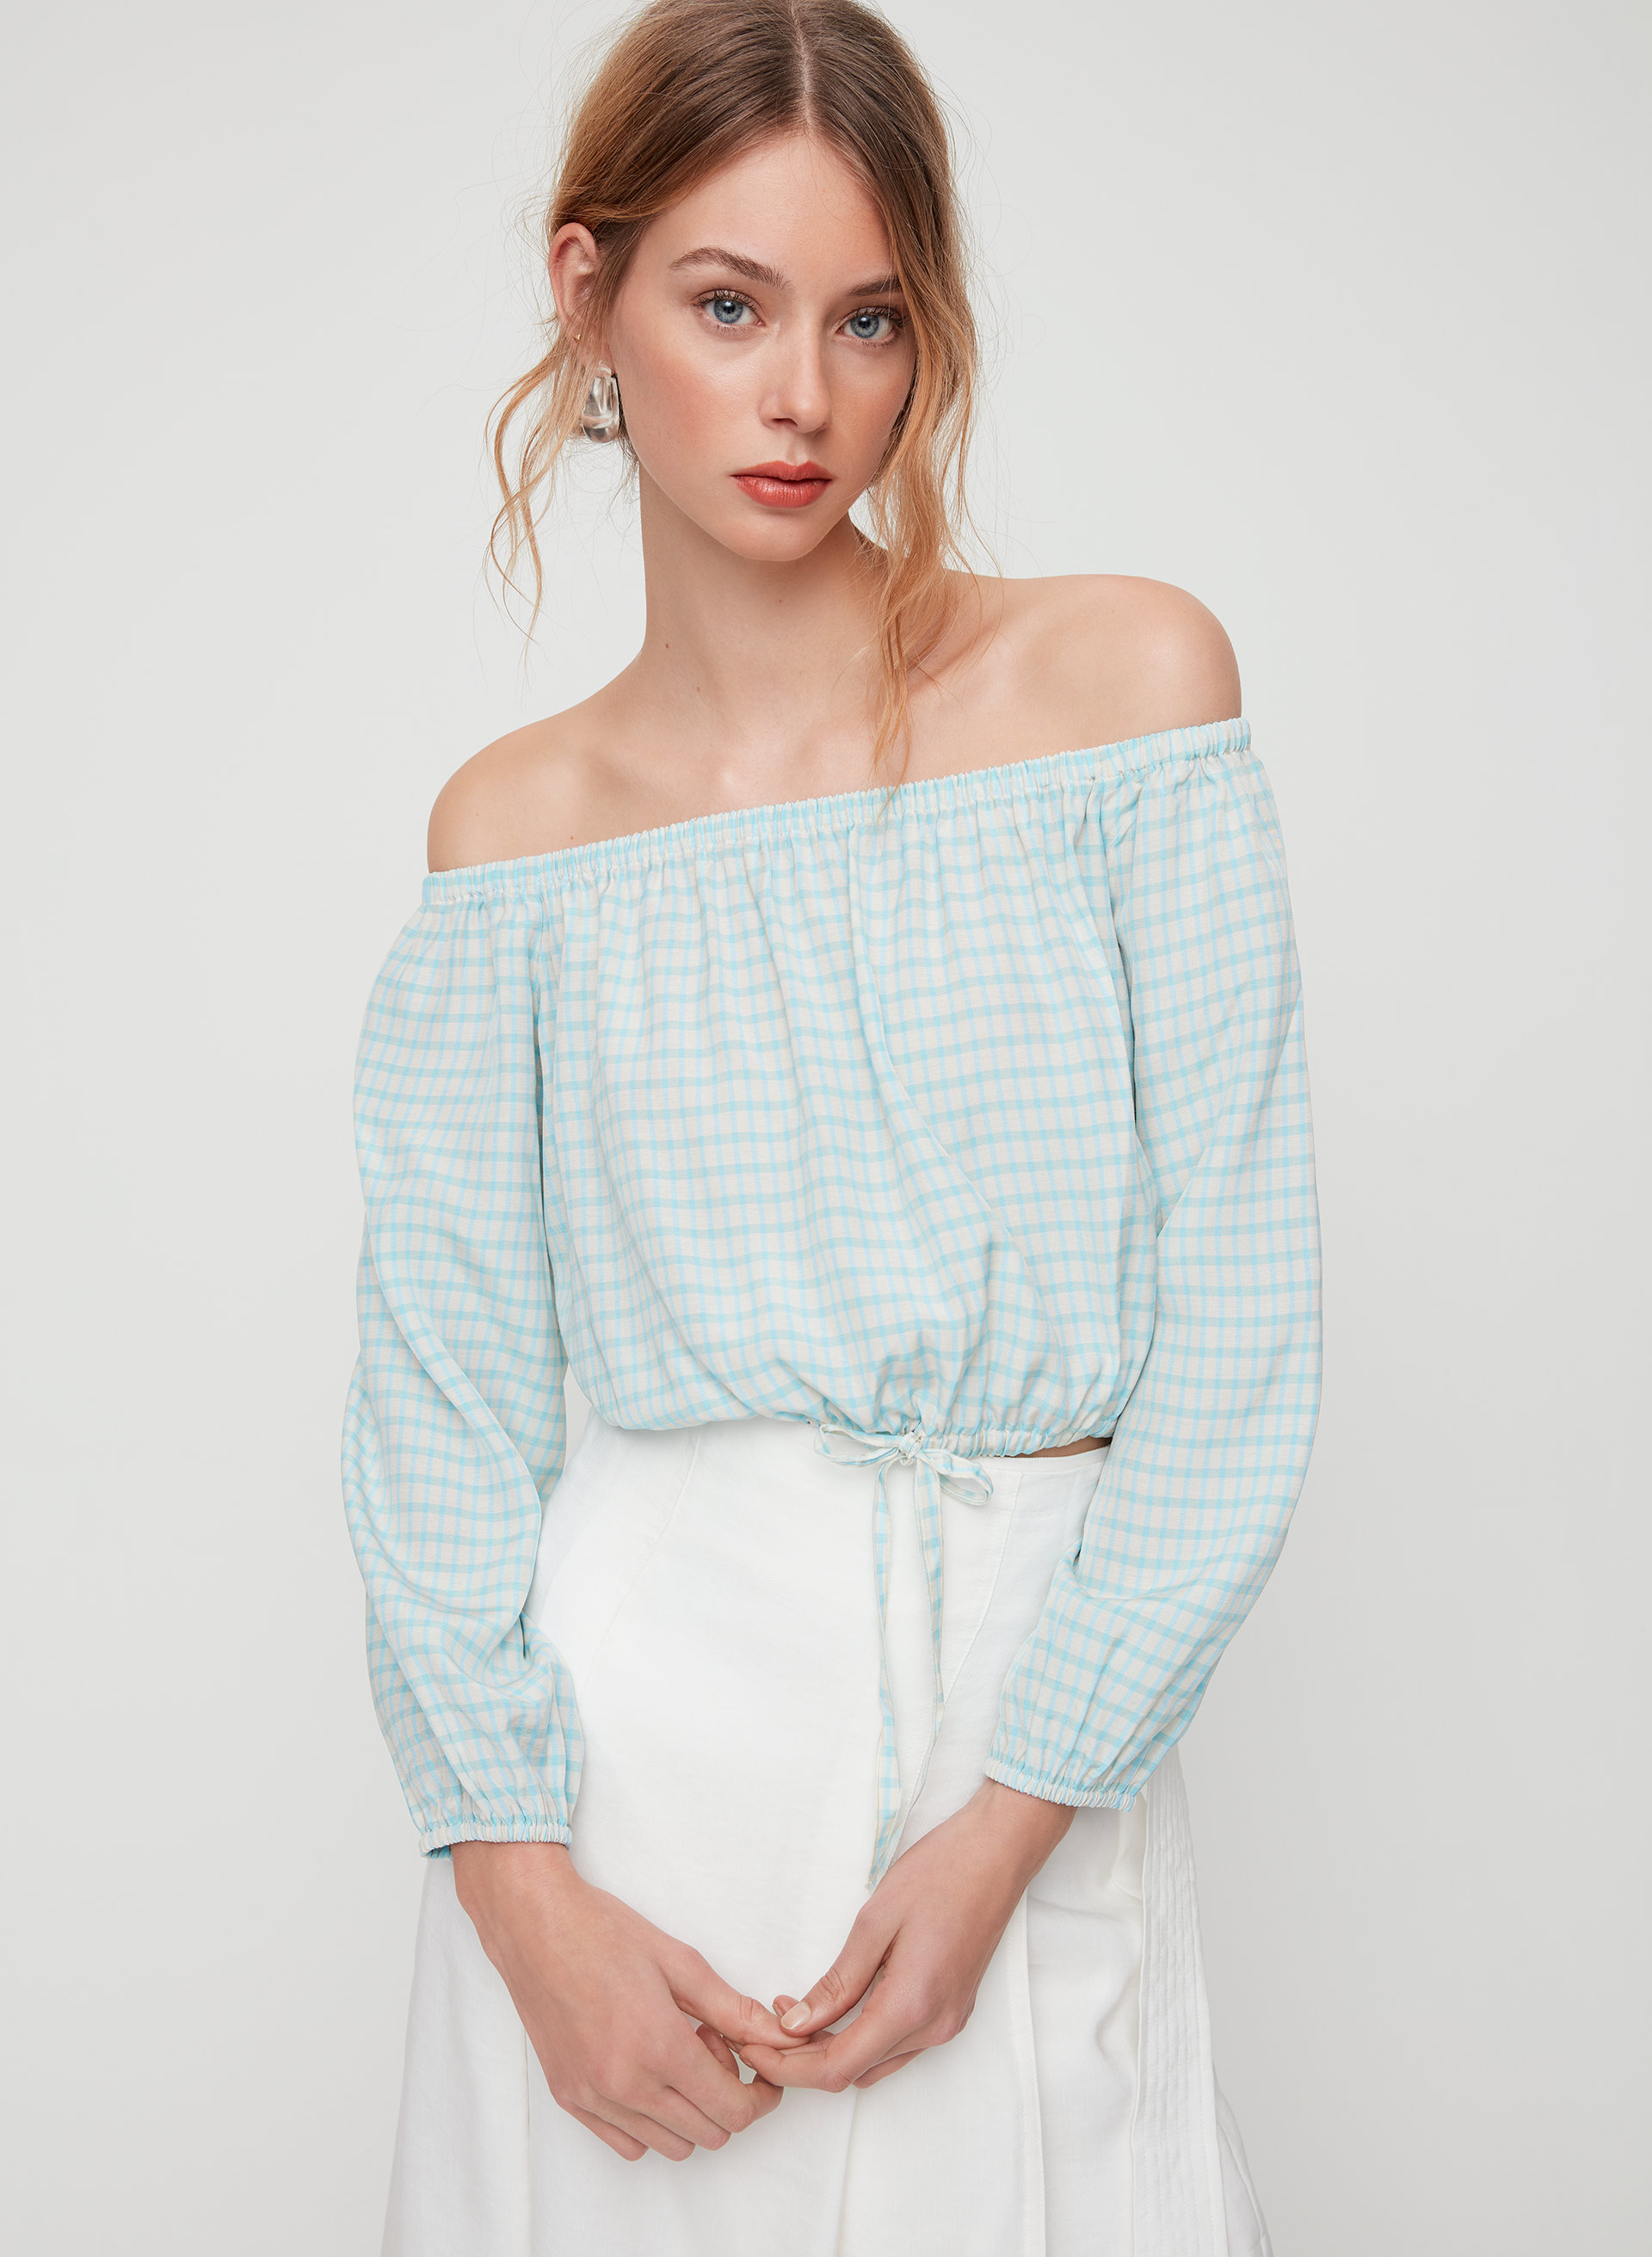 33a2c1176a6 eleanora blouse Cropped, off-the-shoulder blouse